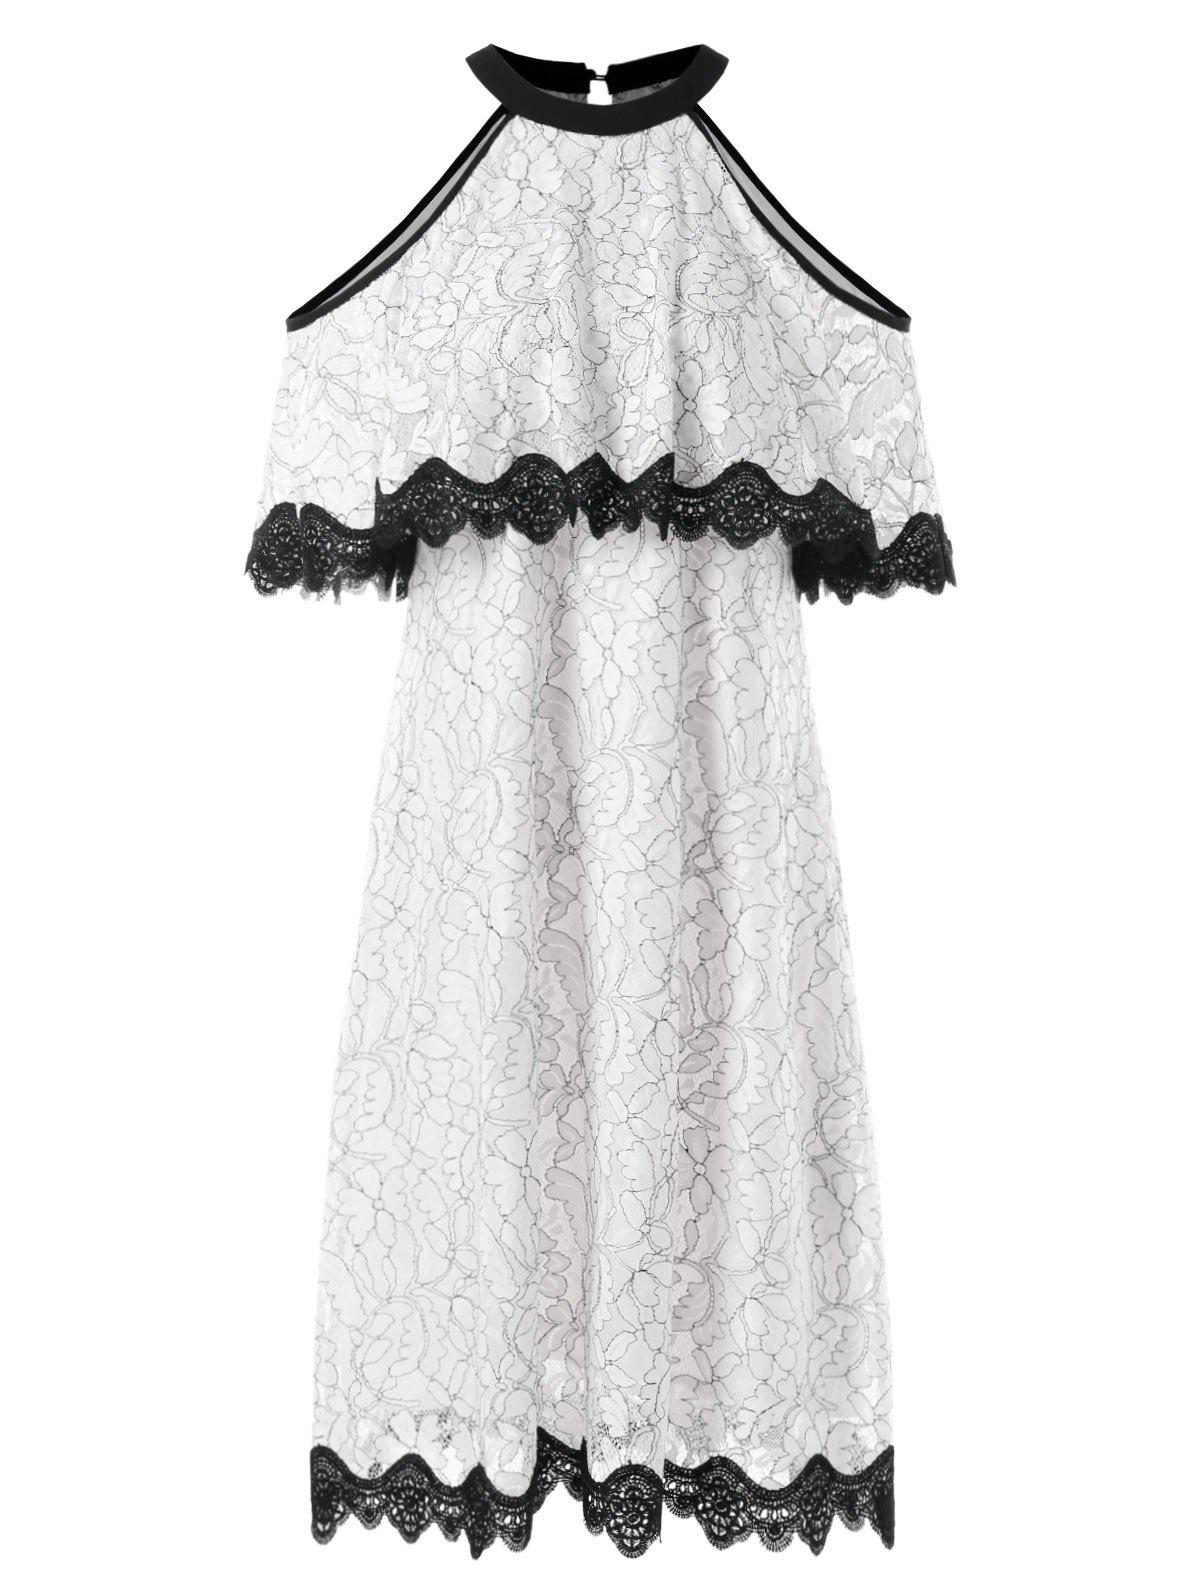 Store Cold Shoulder Lace Trim Floral Swing Dress